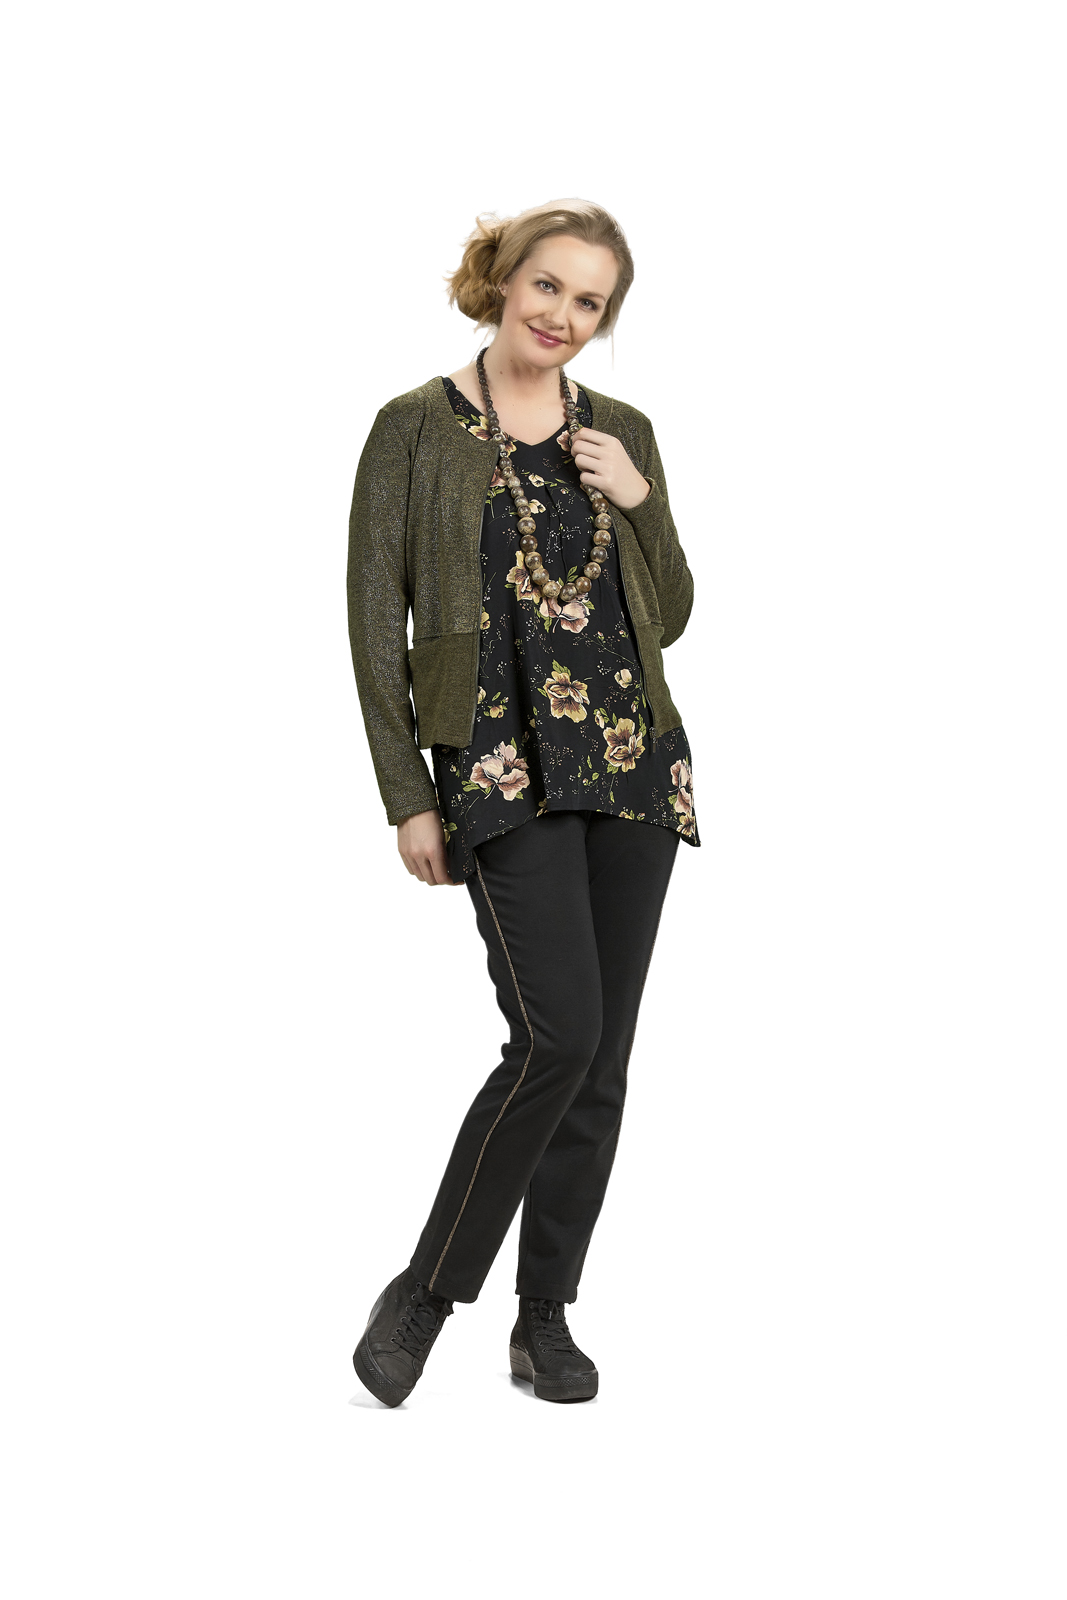 C3286 Cardigan – C8076 Blouse – C5408 Trousers